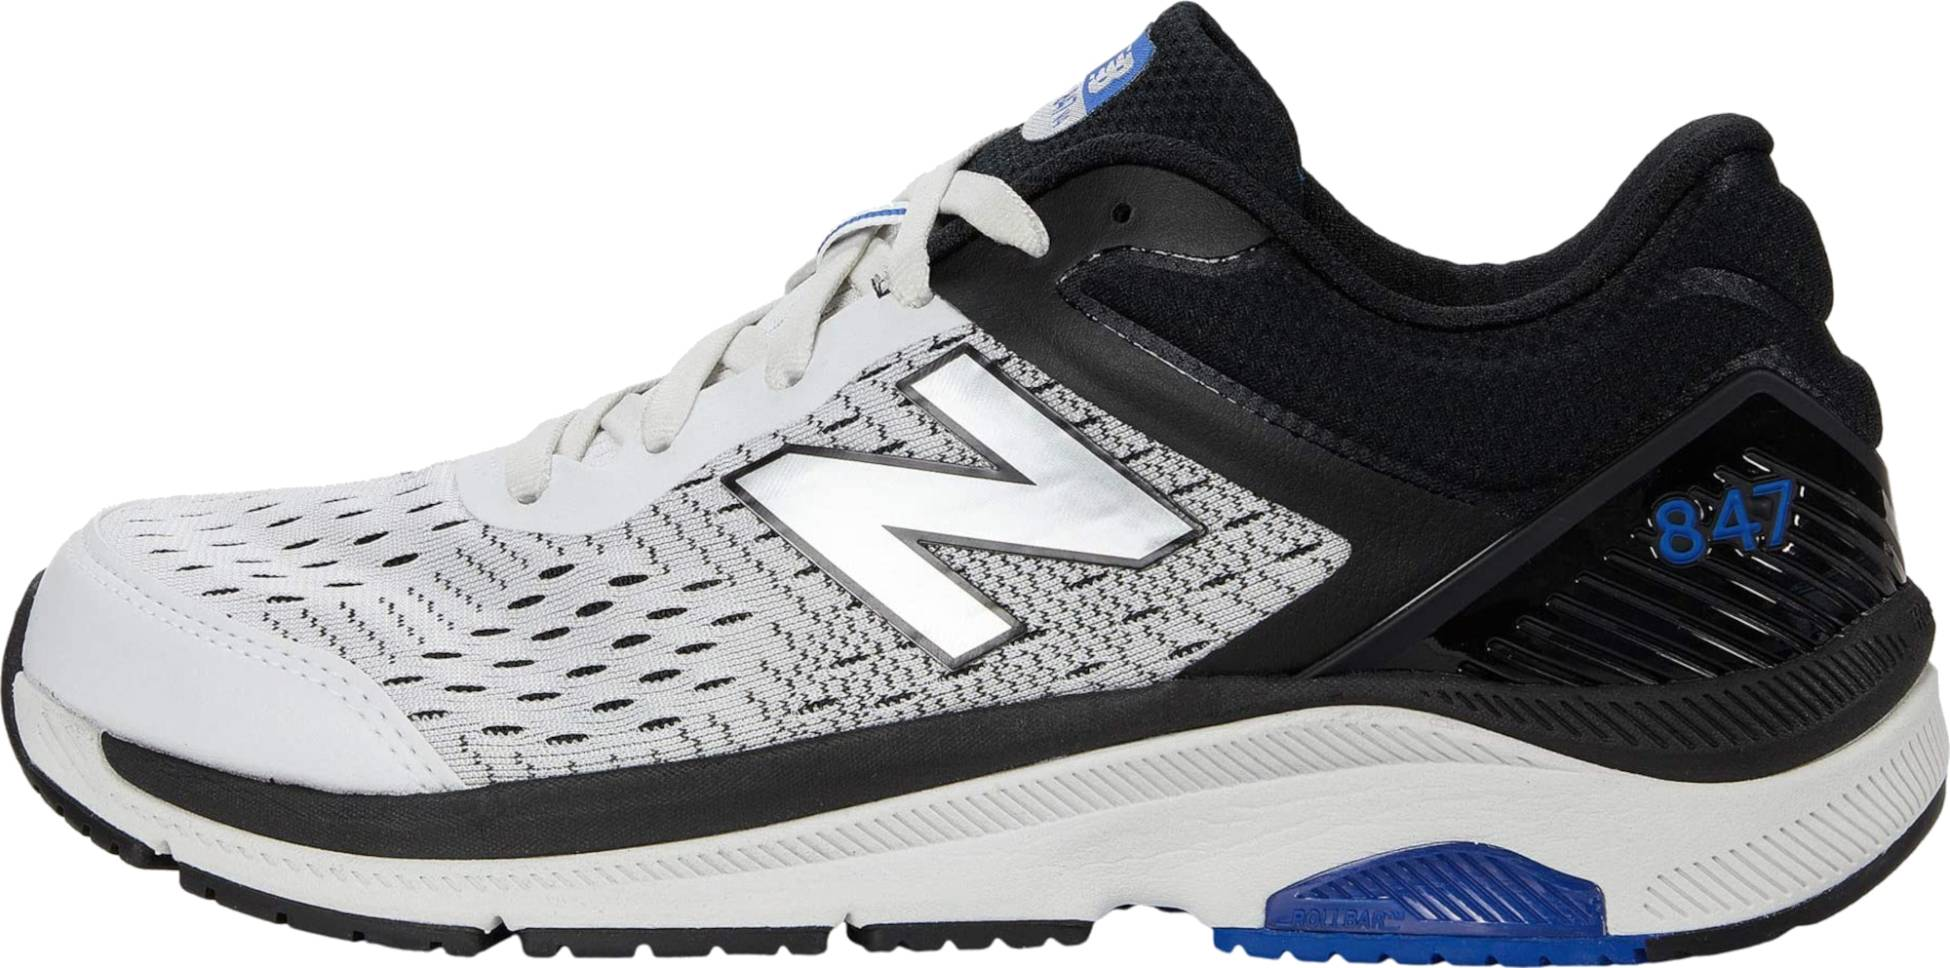 Review of New Balance 847 v4